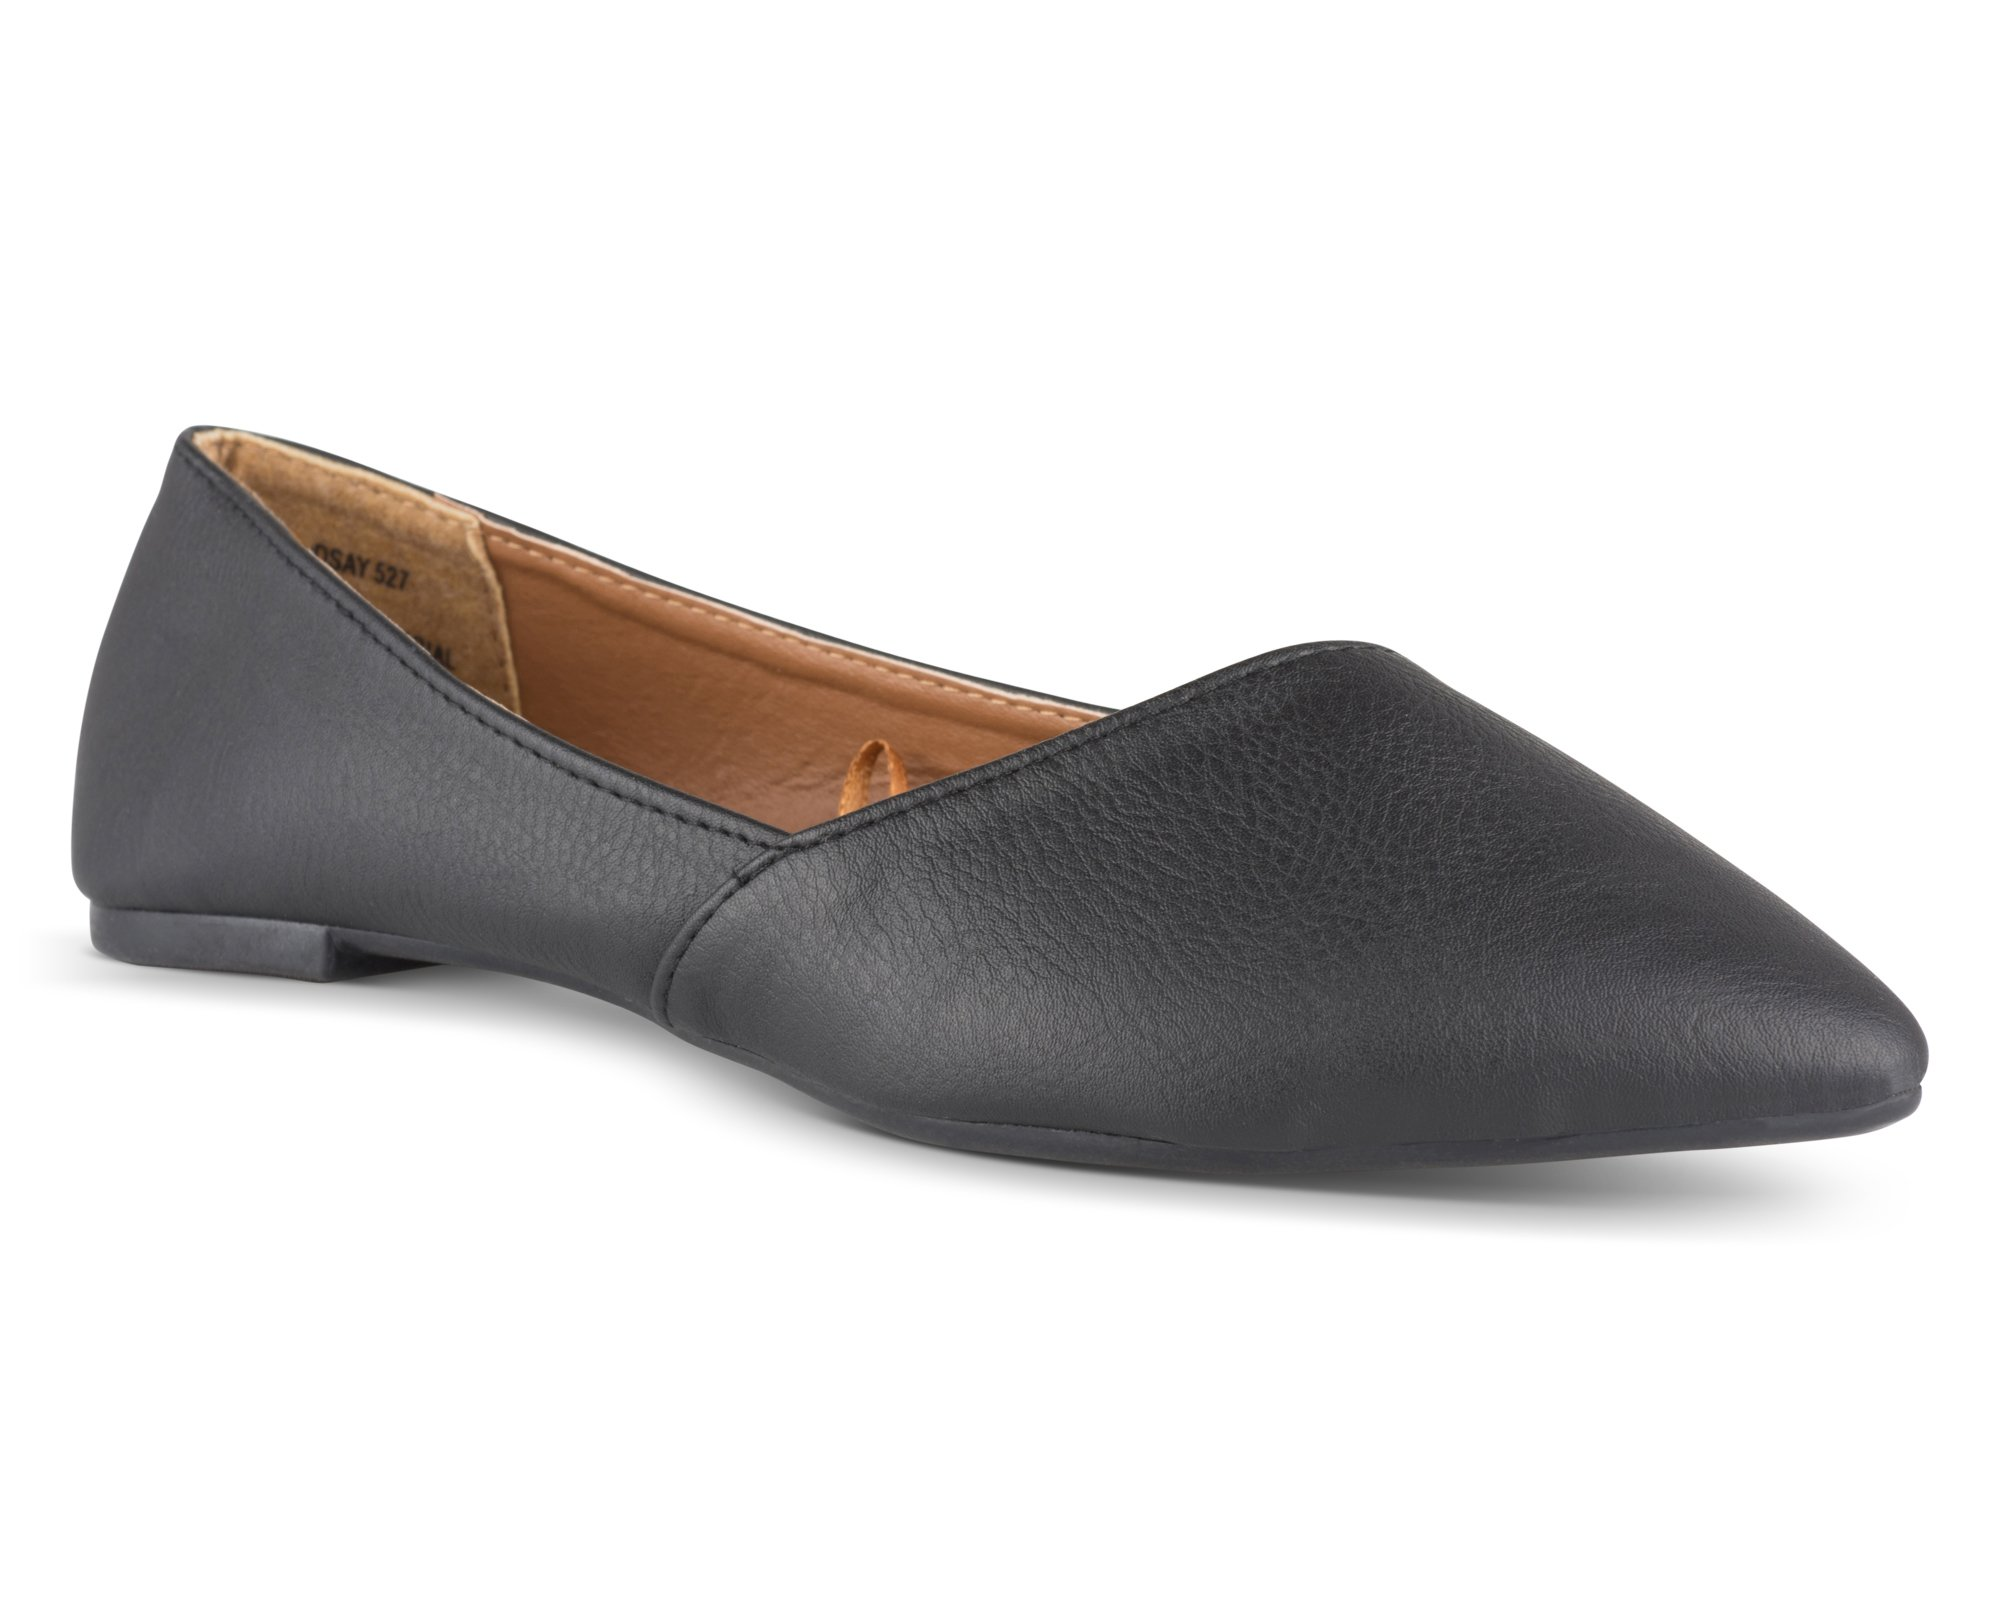 Twisted Womens Lindsay Slanted Front Almond Toe Flat - Black, Size 10